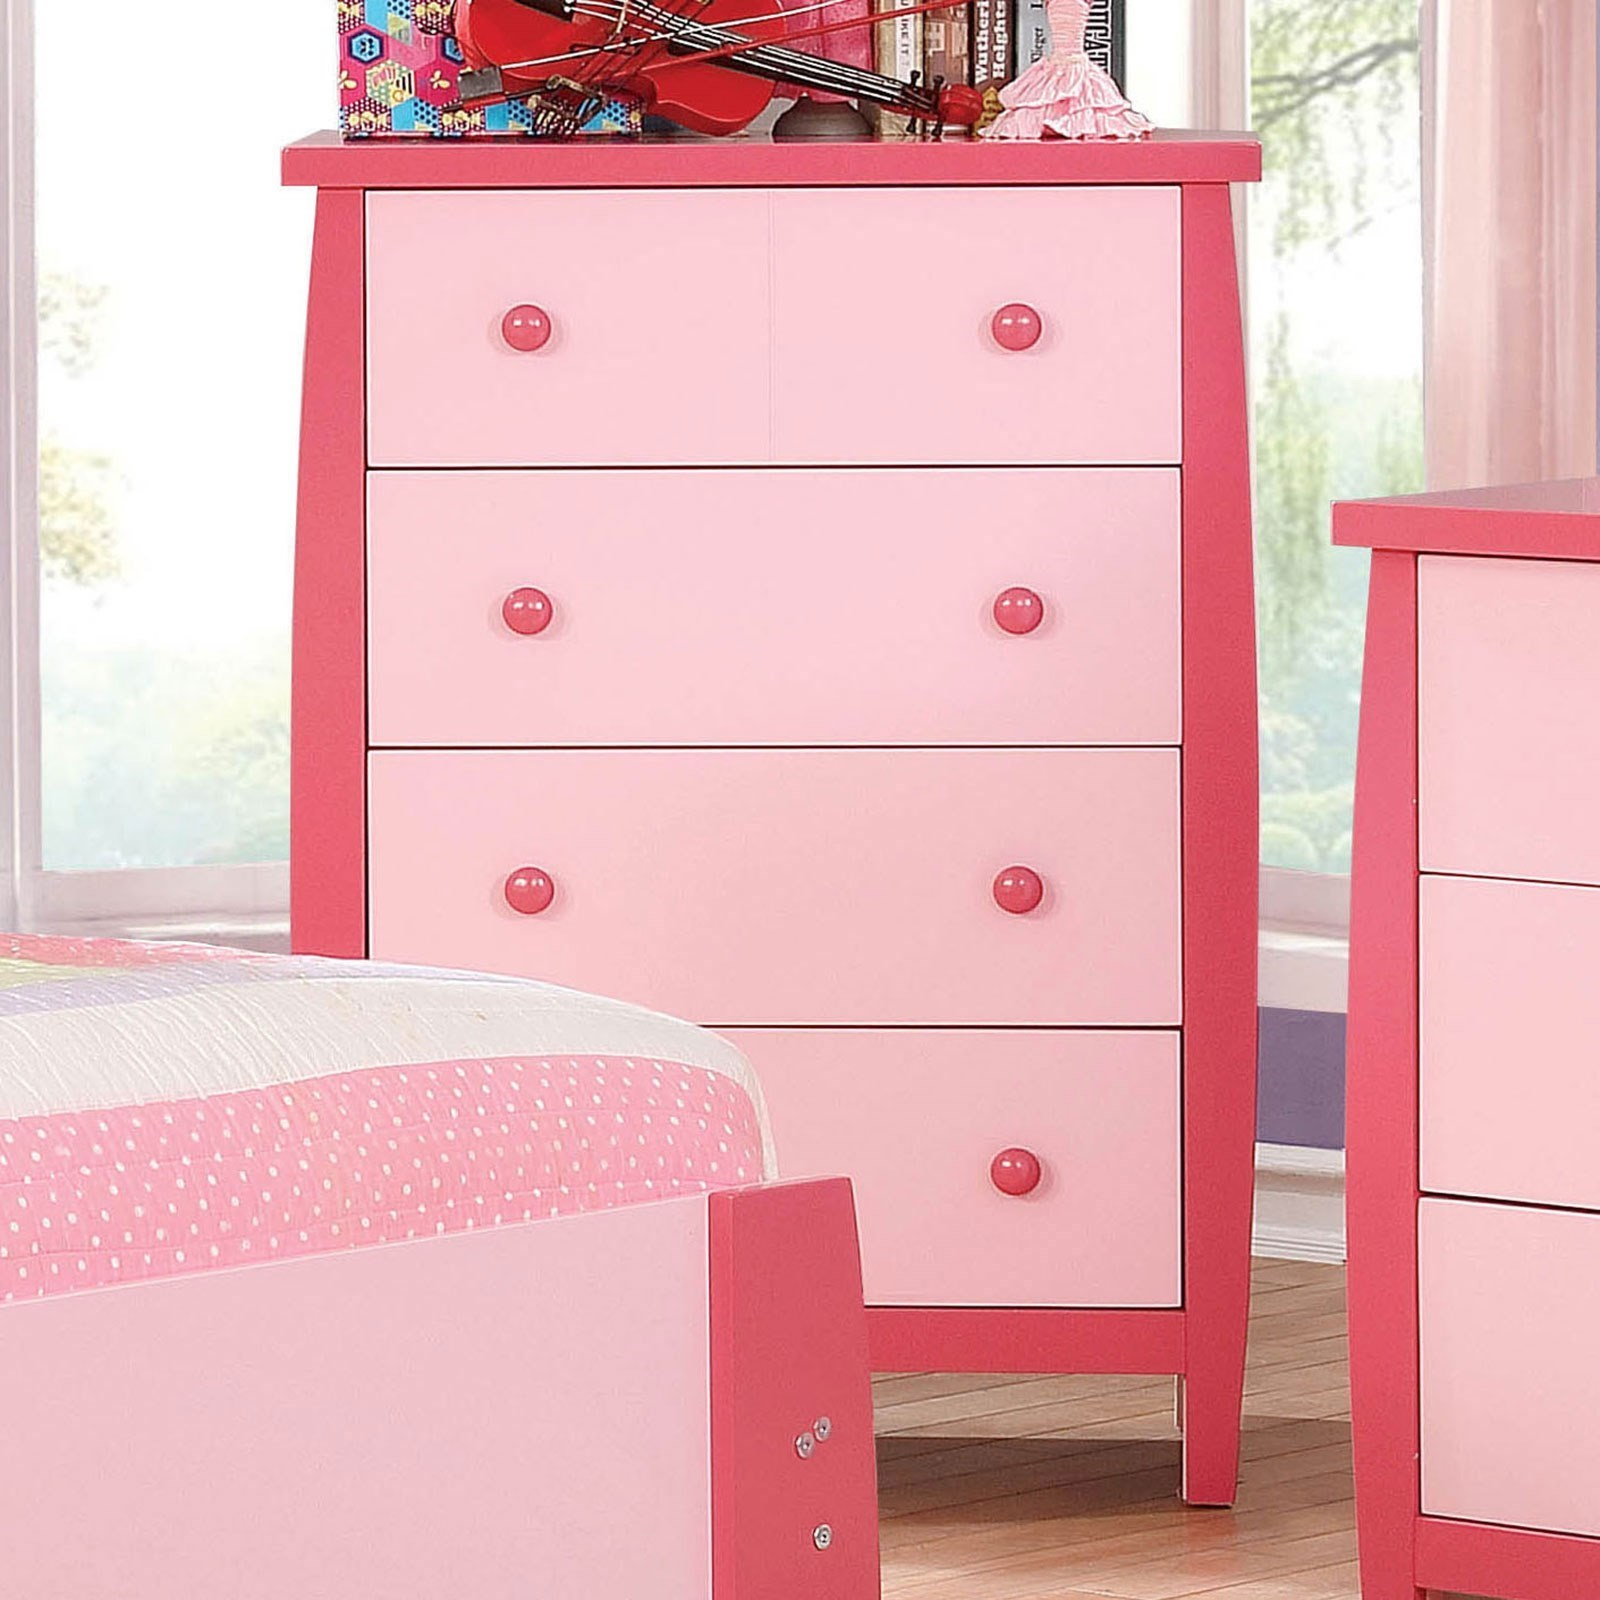 Marlee Contemporary Youth Bedroom 4 Drawer Chest by Furniture of America at  Furniture Superstore - NM